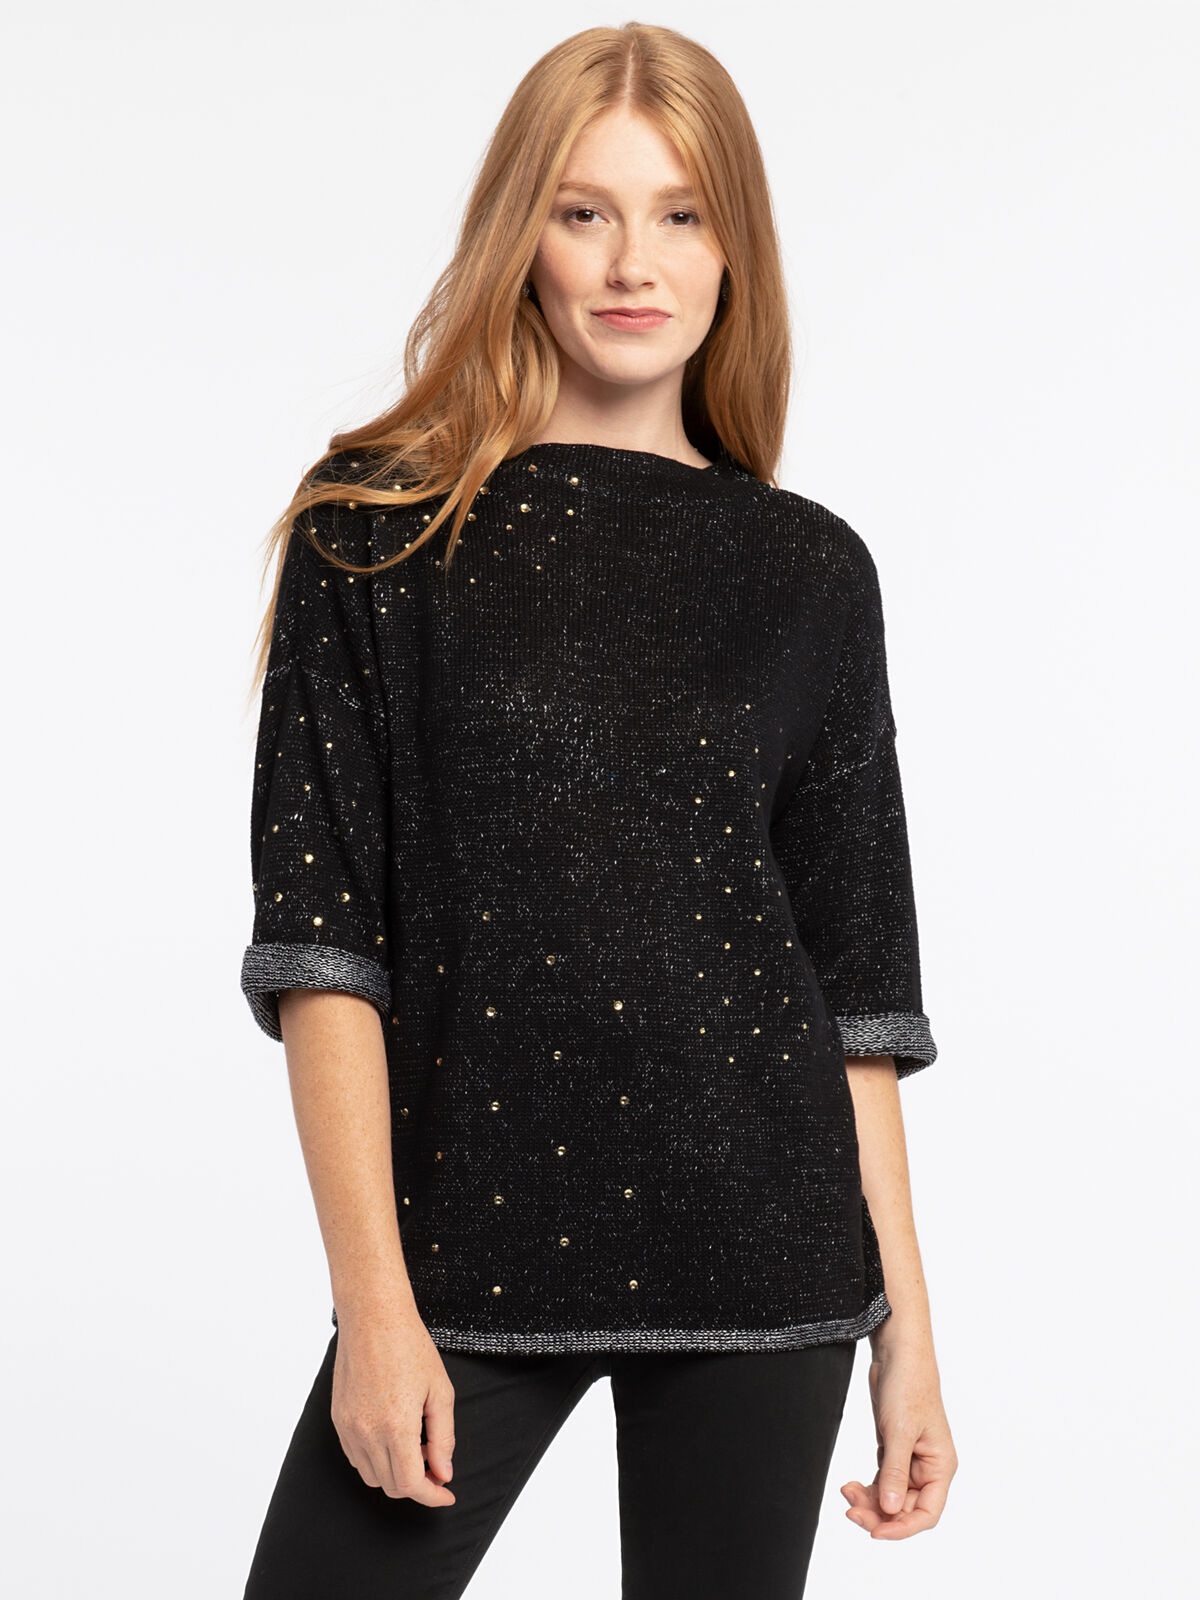 Starry Eyed Sweater